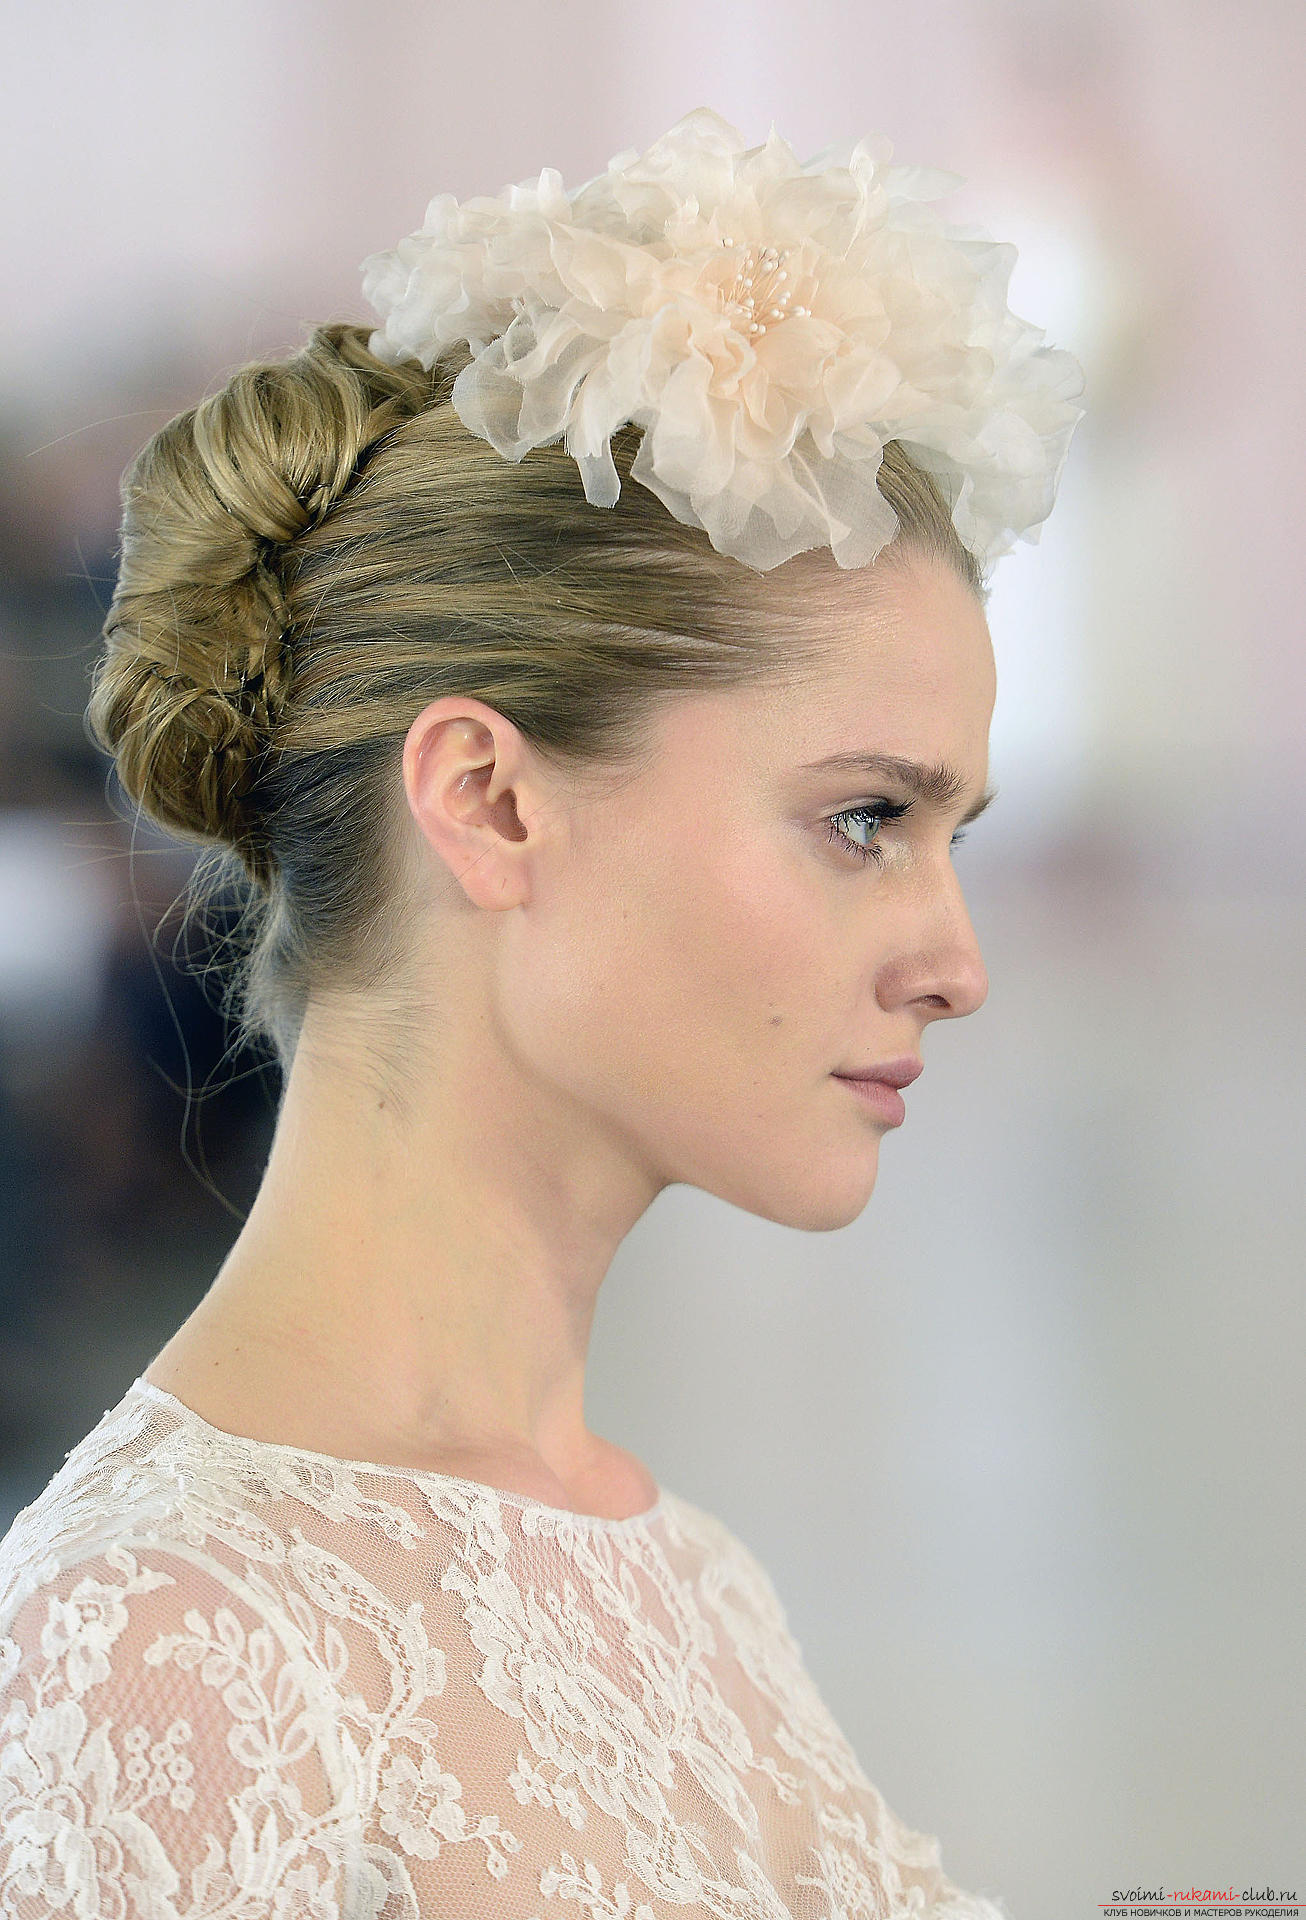 Hairstyles for the bride, topical in 2016. Photo №7